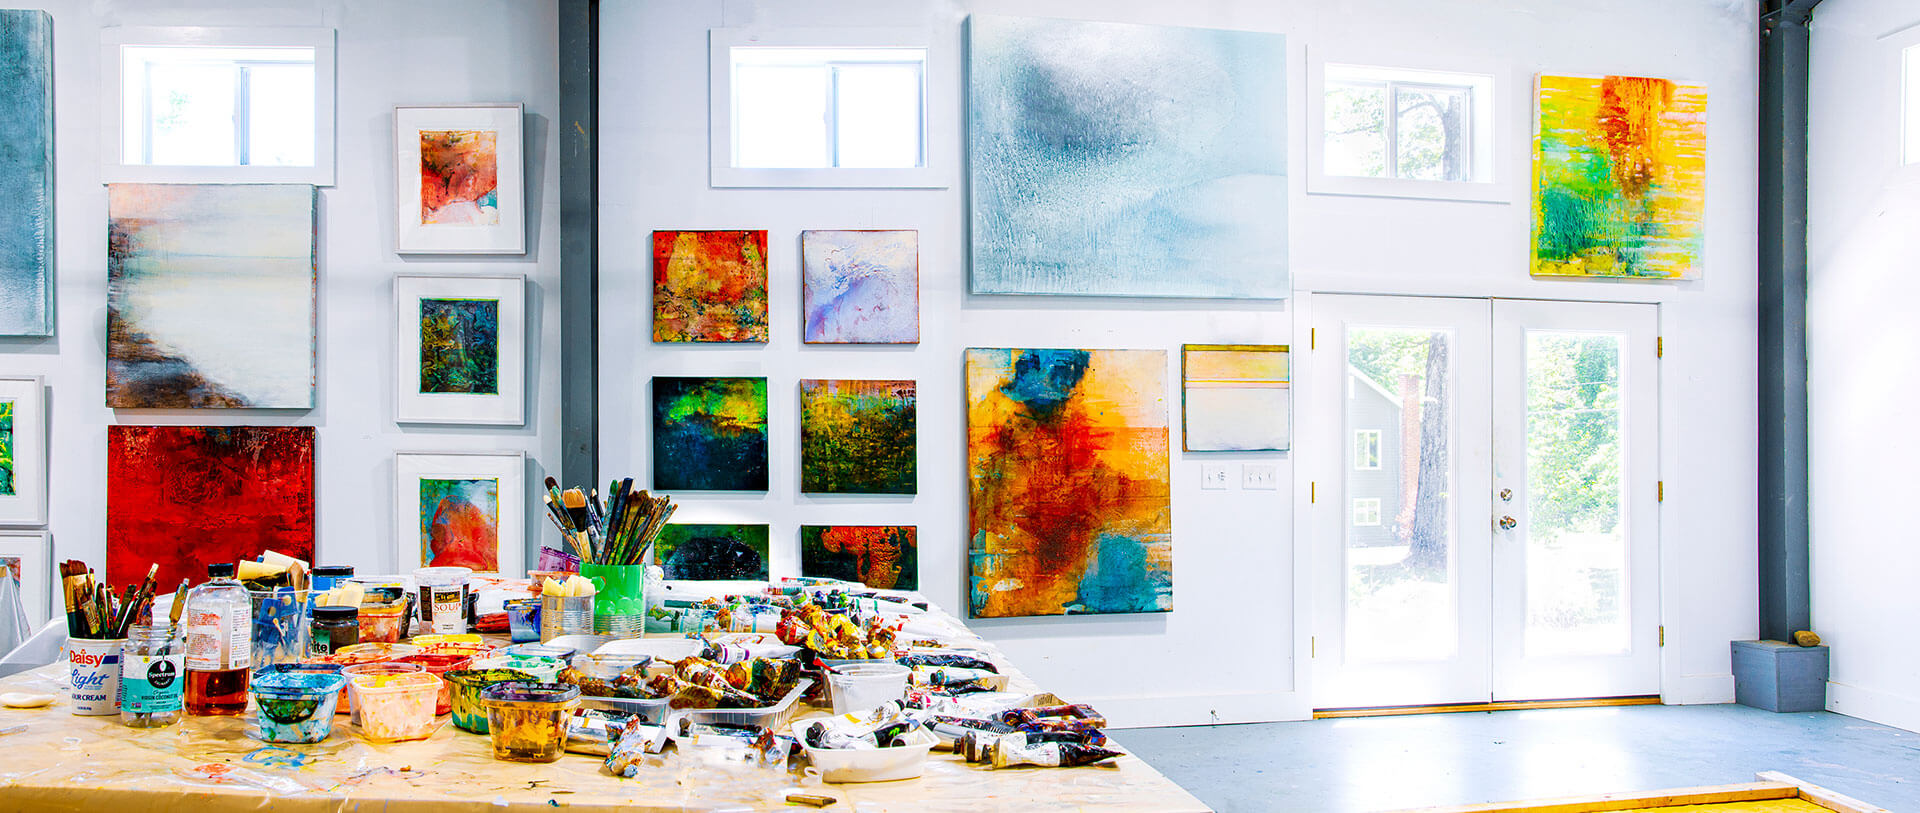 Artist studio open studio Berkshires Great Barrington Virginia Bradley abstract painting interiors